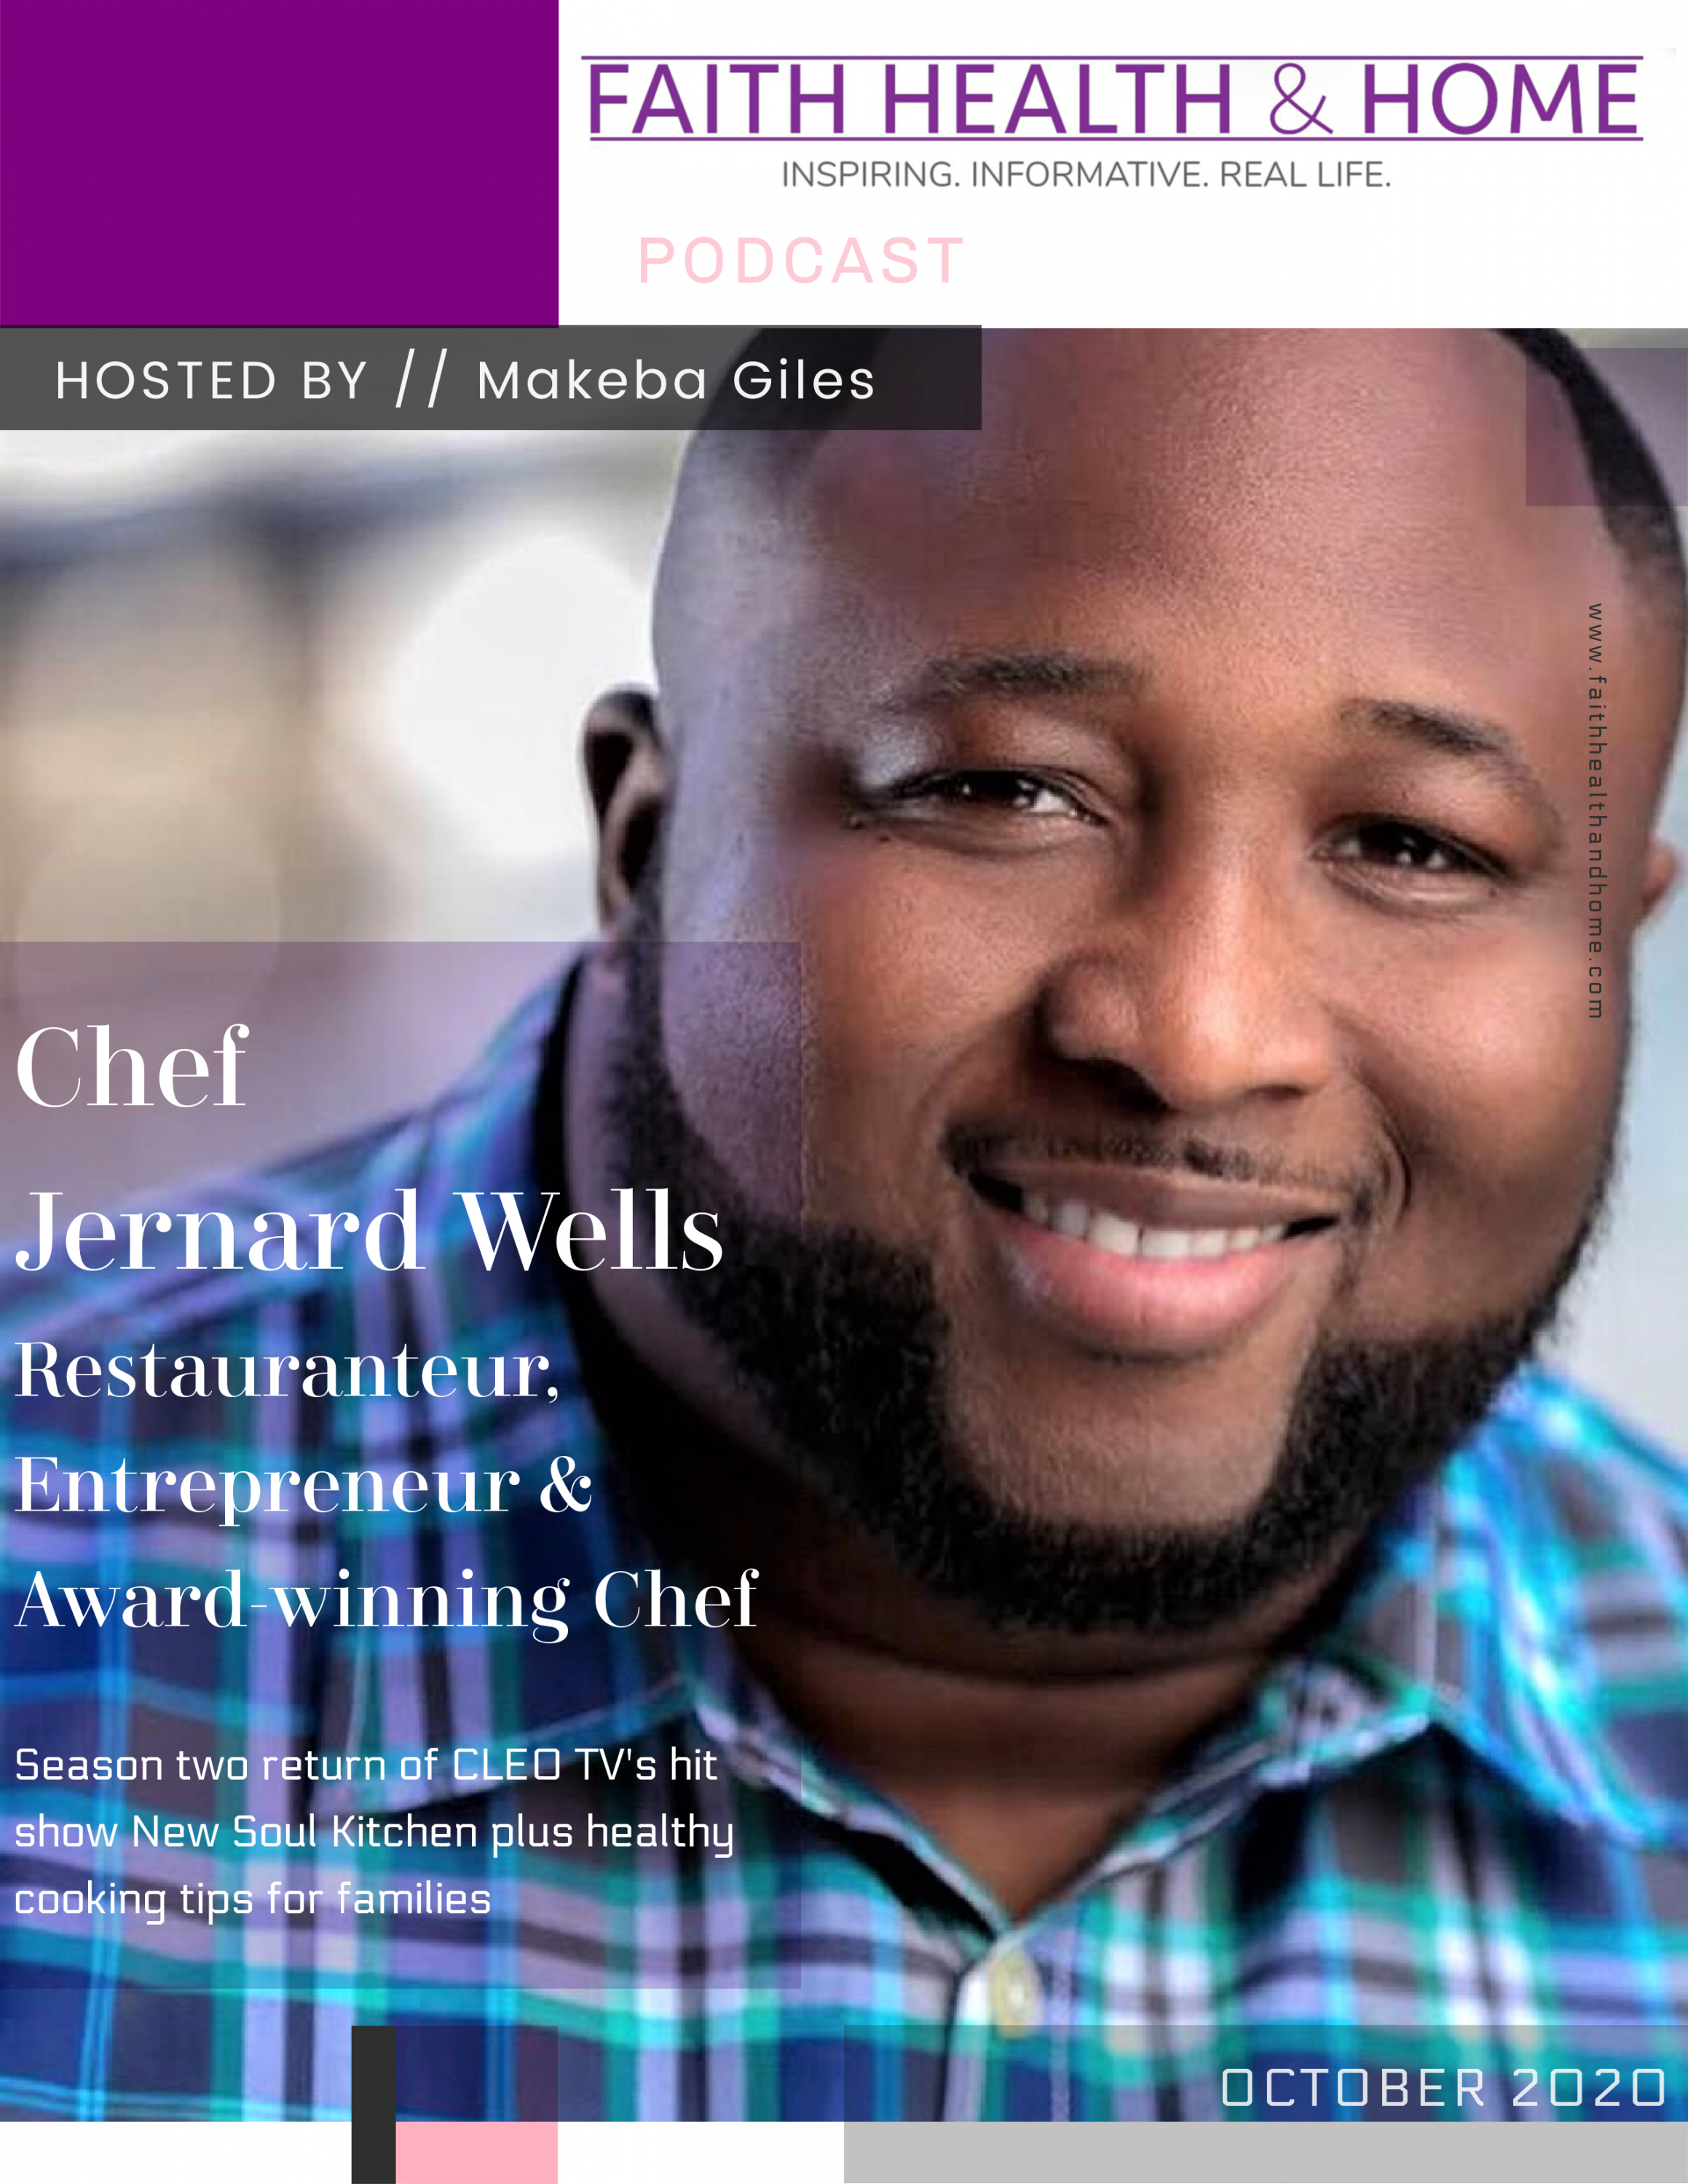 chef jernard wells interview with faith health and home podcast makeba giles lifestyle media cleo tv